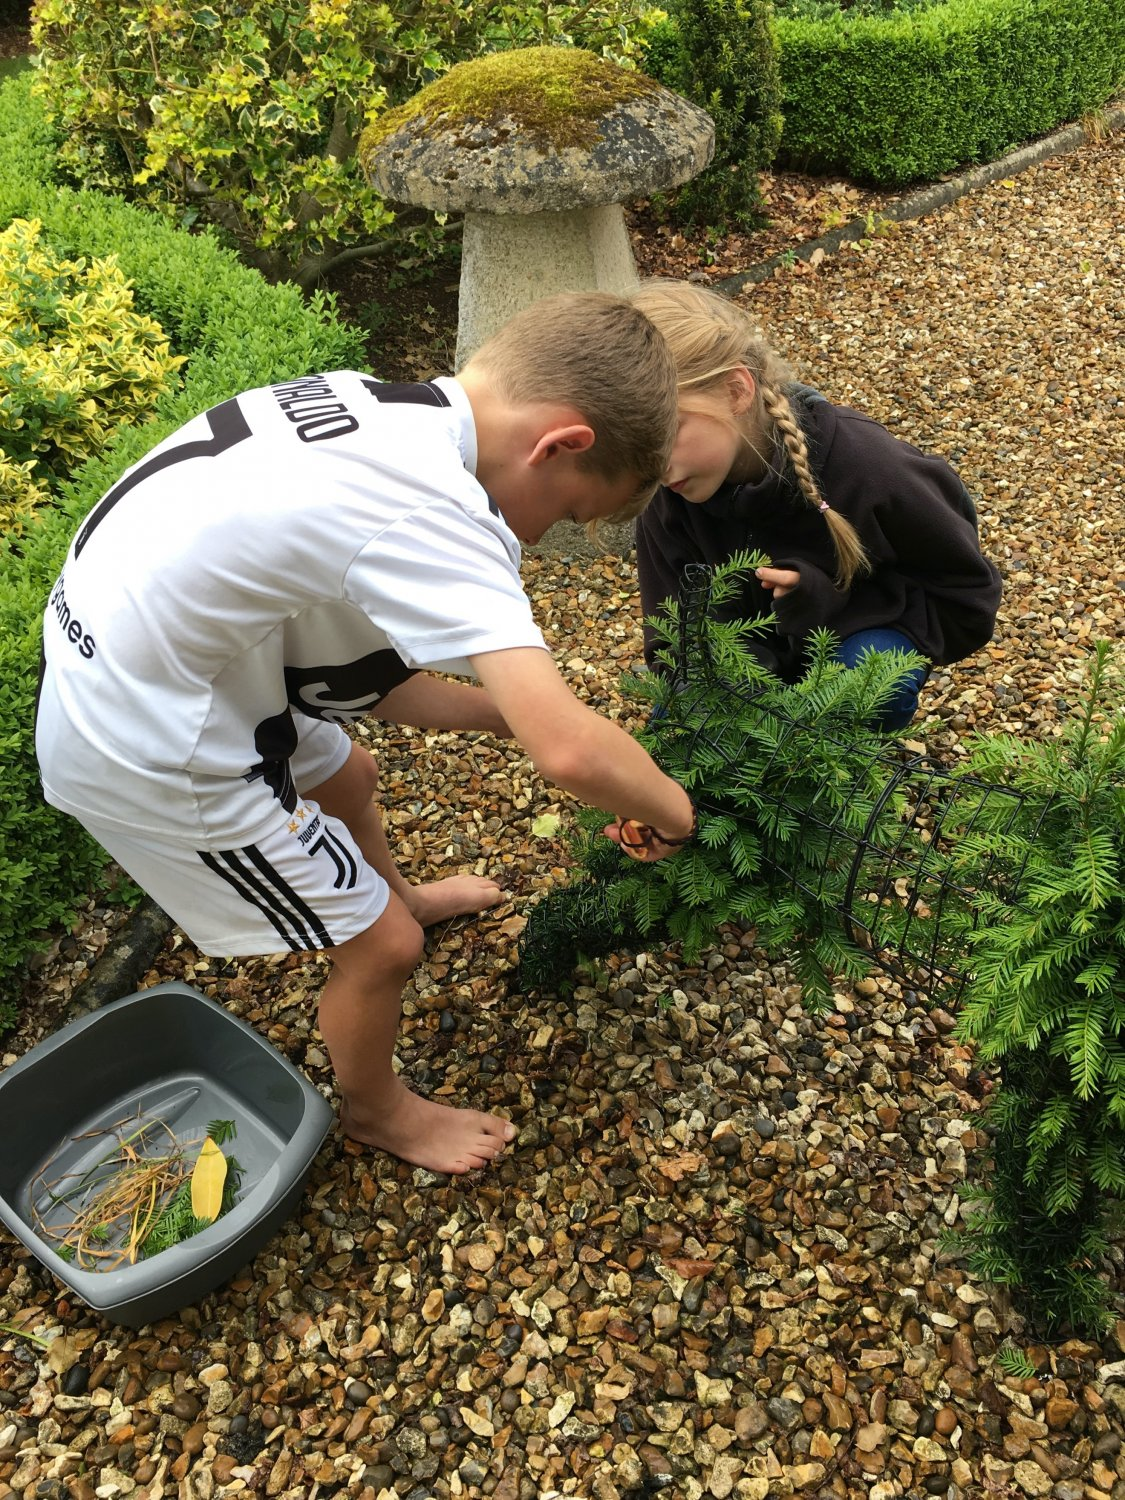 My two eldest grandchildren were keen to have a go, so as we need to encourage budding topiarists, I let them loose with ARS pruning snips.